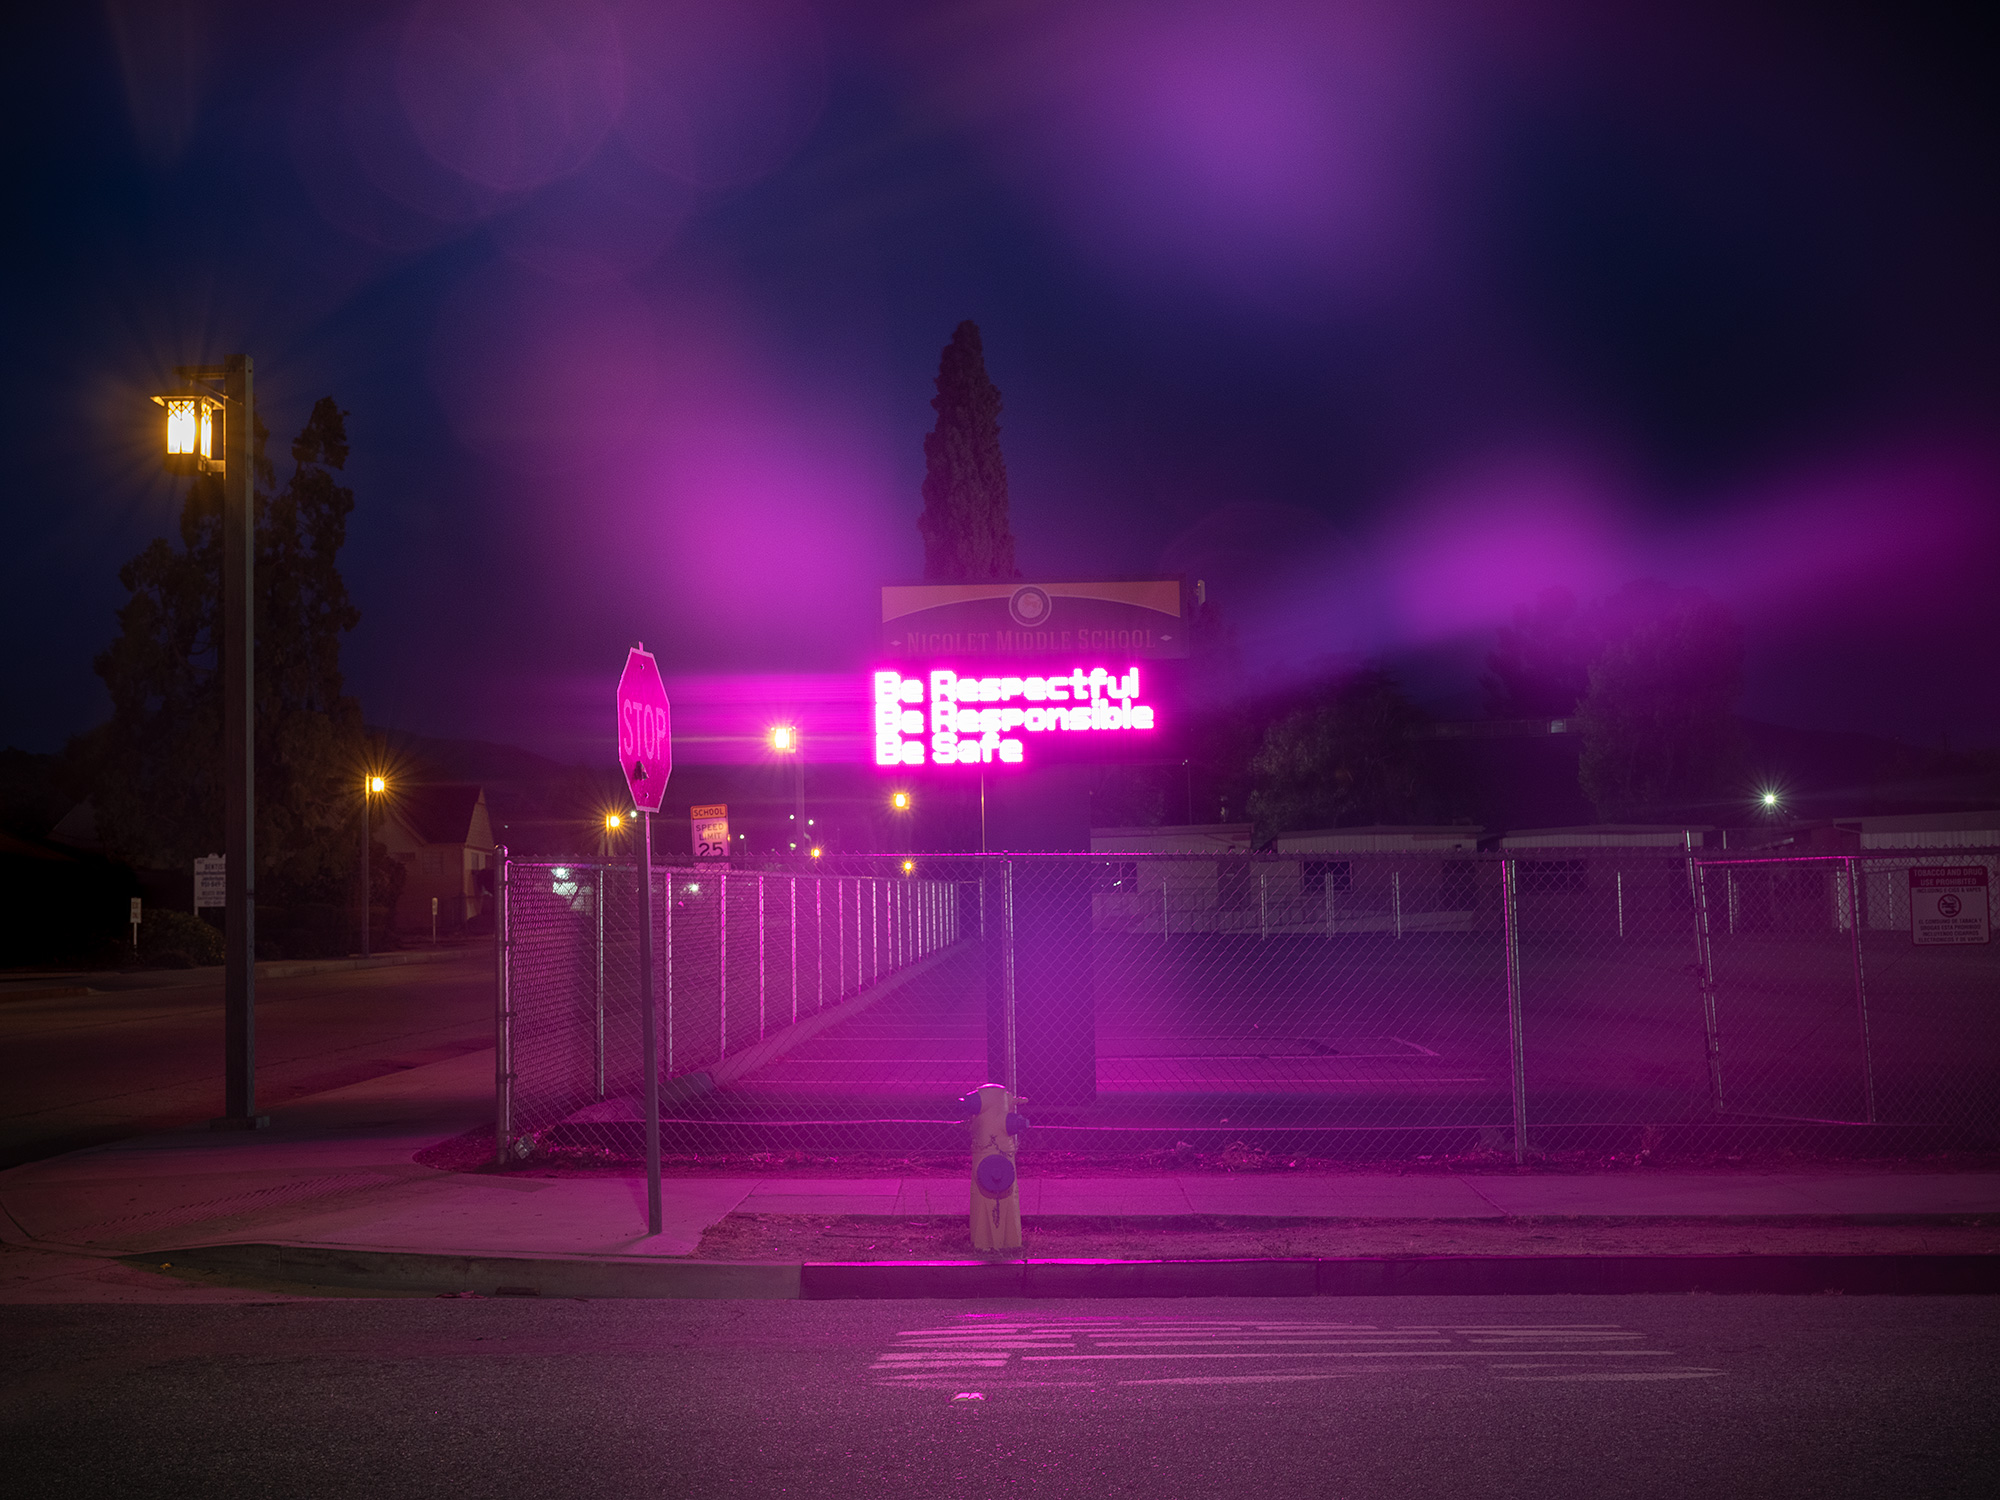 LED sign at night outside of high school.